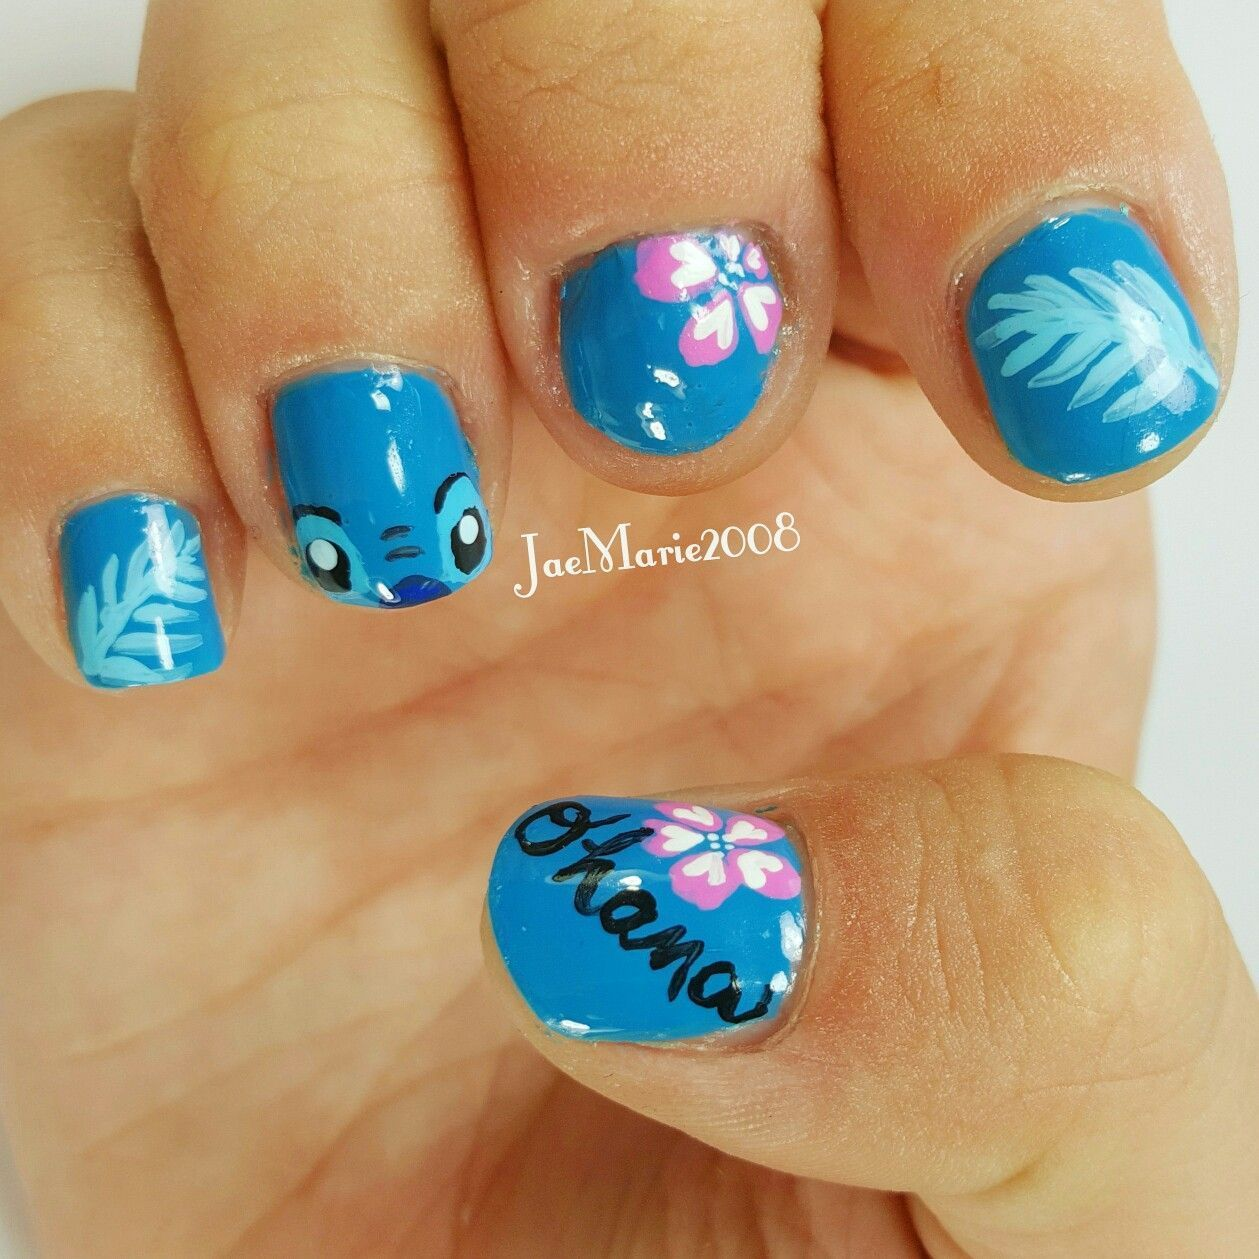 Tips To Make The Most Out Of Your Skin Disney Acrylic Nails Nail Art Disney Disney Nail Designs